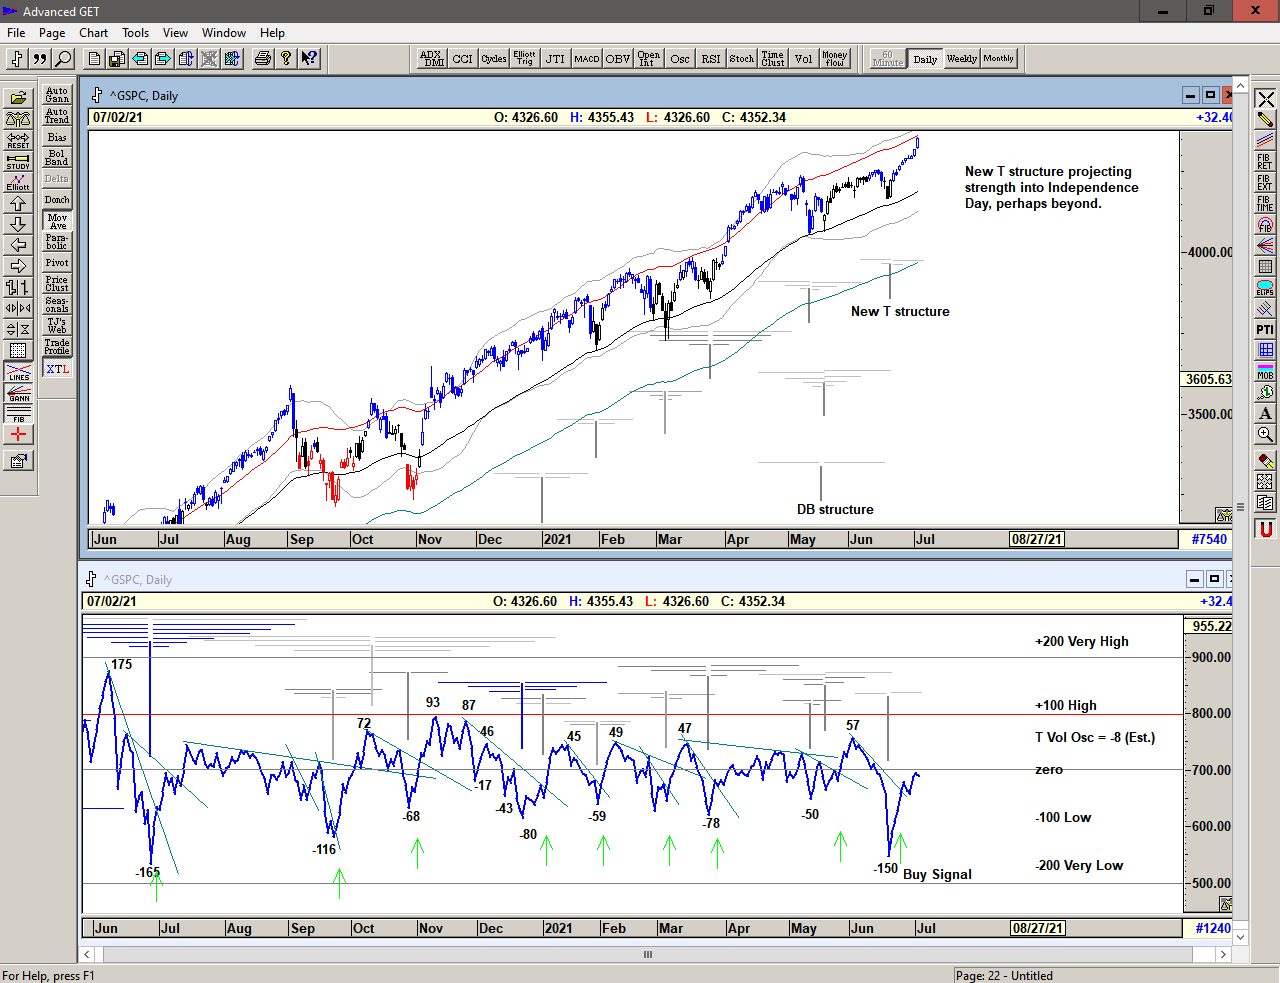 Chart of S&P 500 with T volume oscillator for 06 July 2021